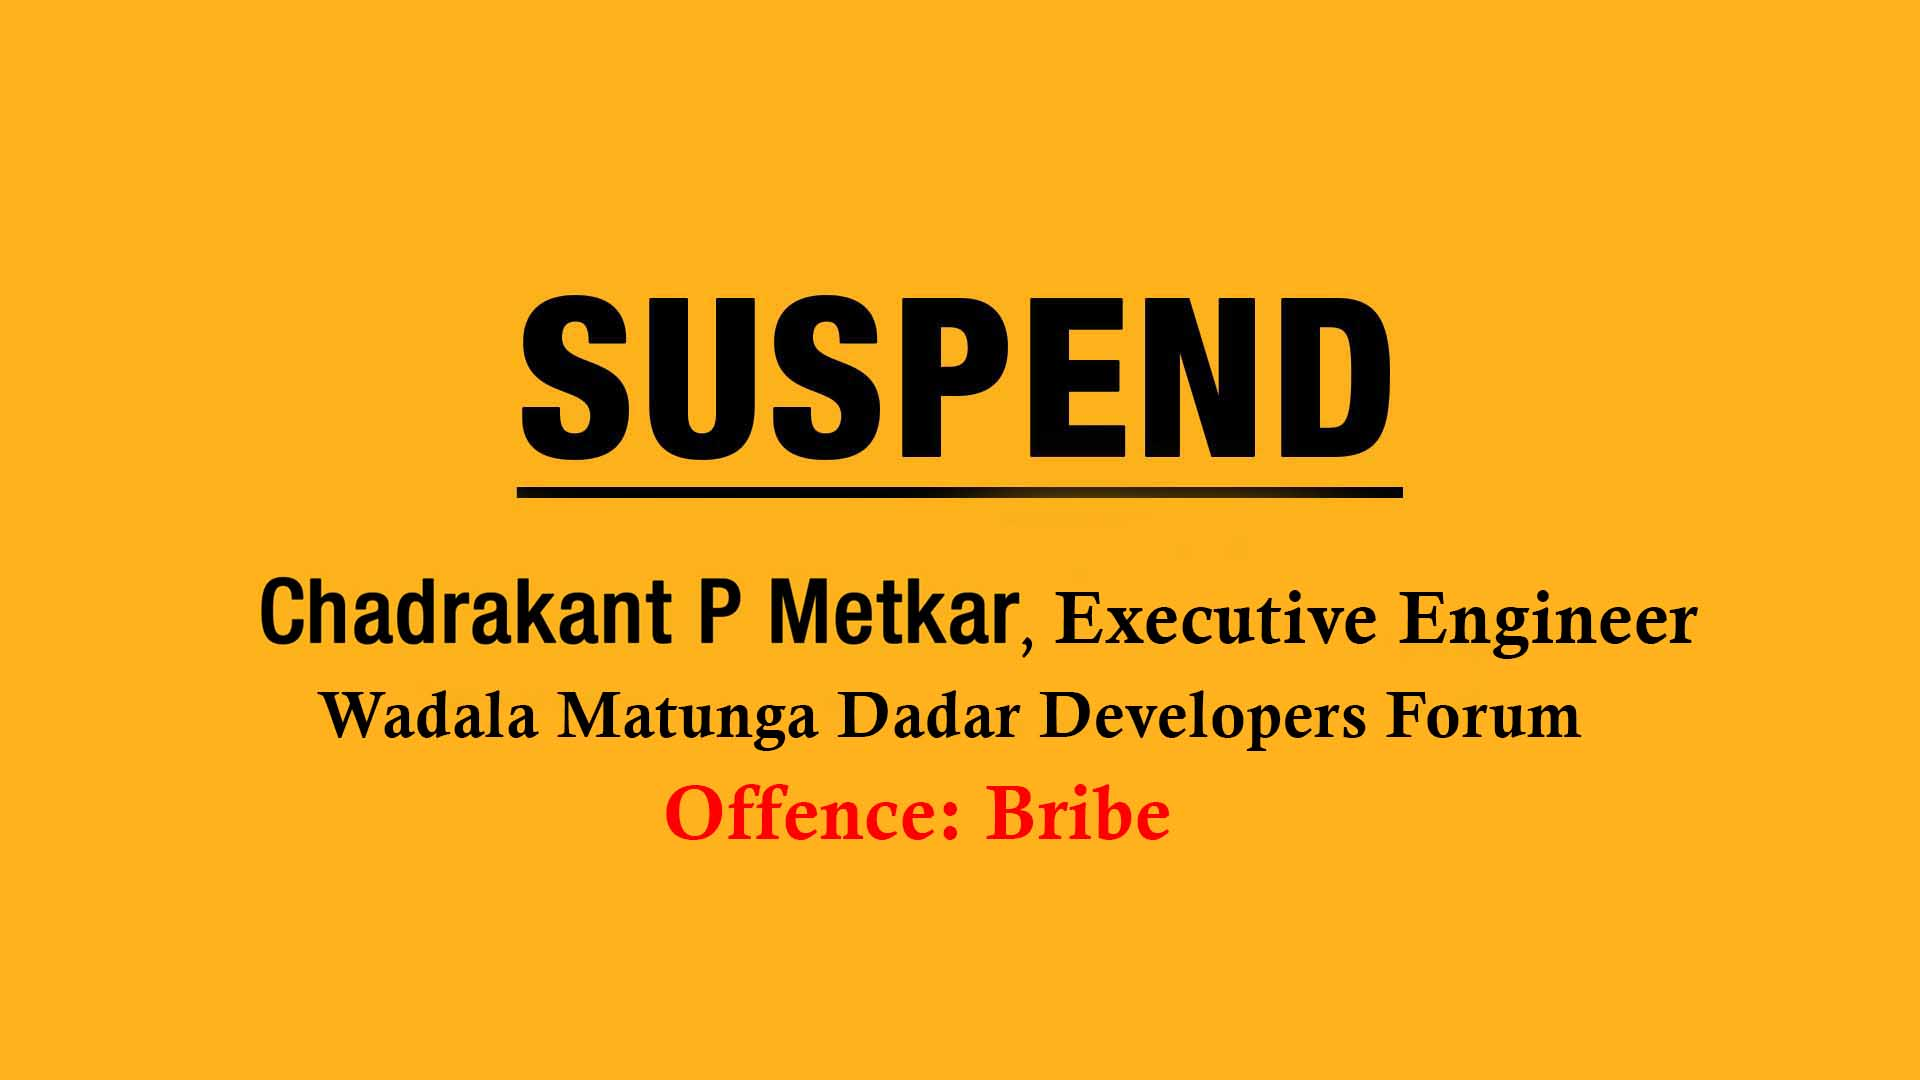 Appeal For A Strict Action Against Bribe